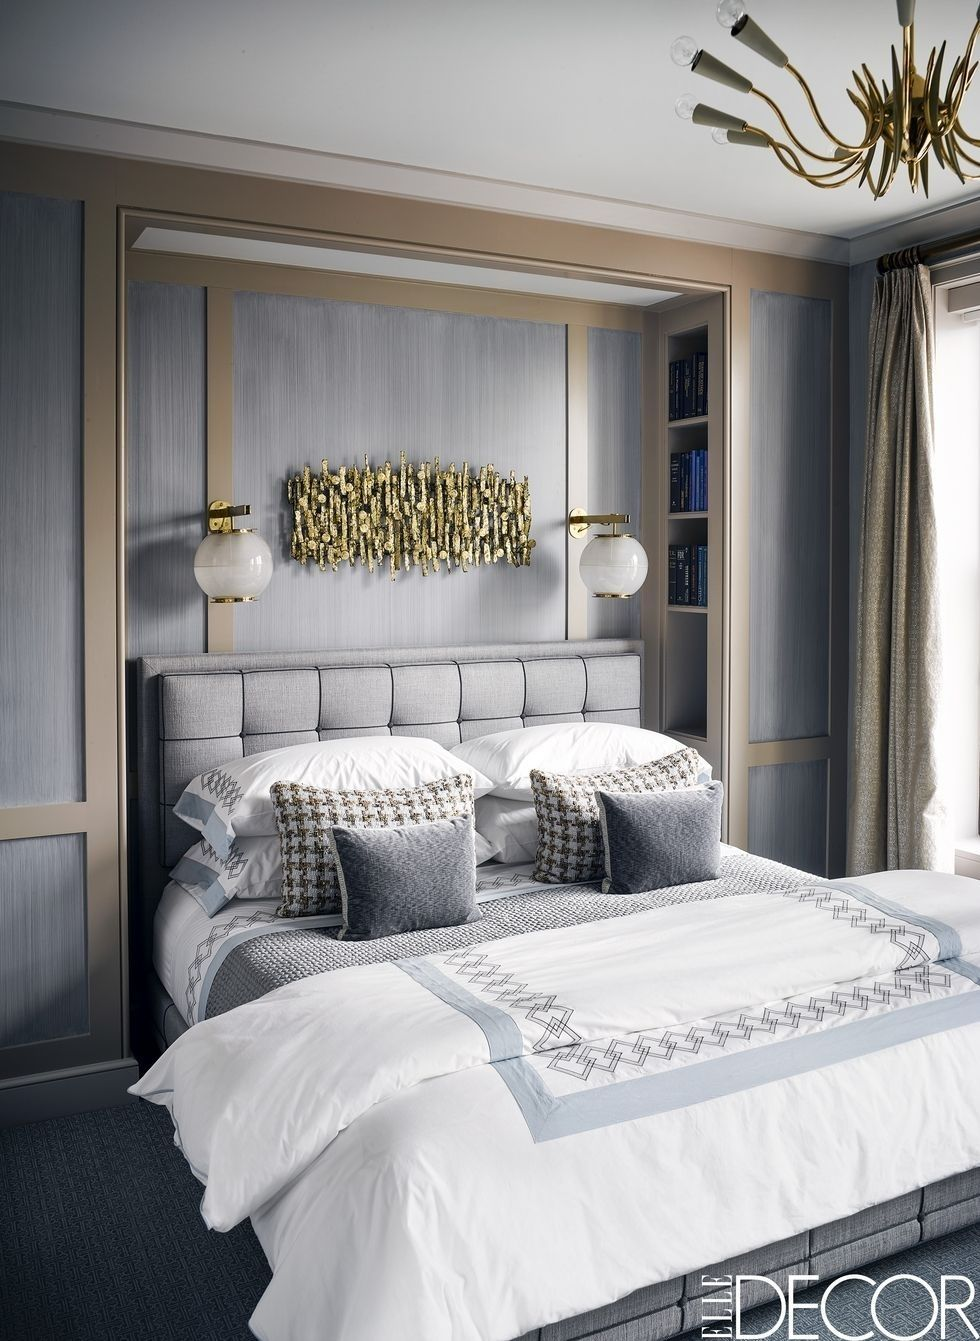 bedroom lighting ideas & 40 Bedroom Lighting Ideas - Unique Lights for Bedrooms